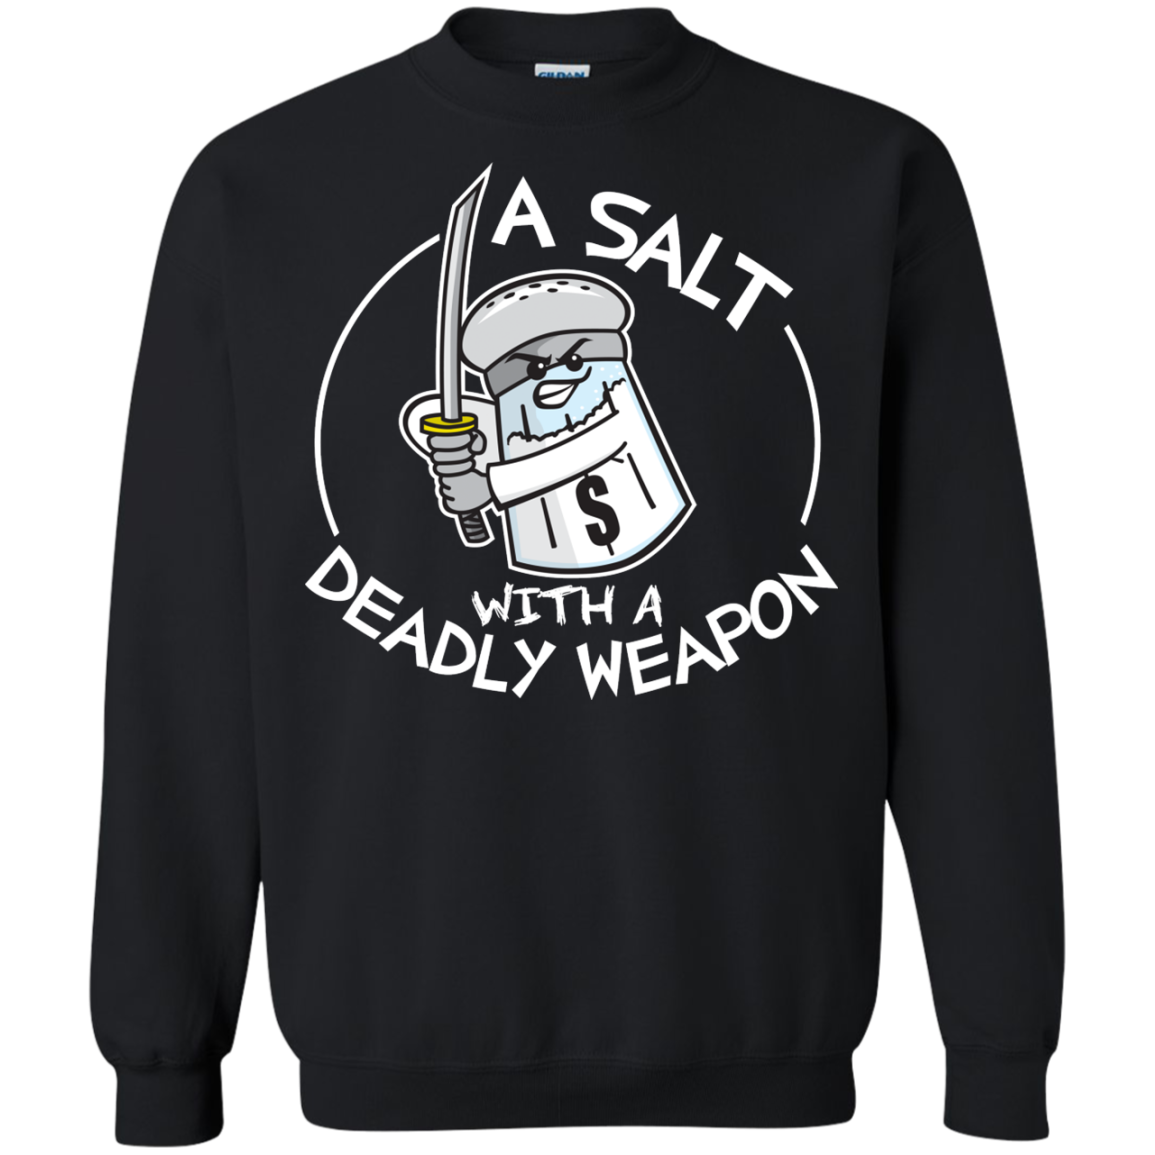 A Salt with A Deadly Weapon T-Shirt & Hoodie, Sweatshirt - The Sun Cat